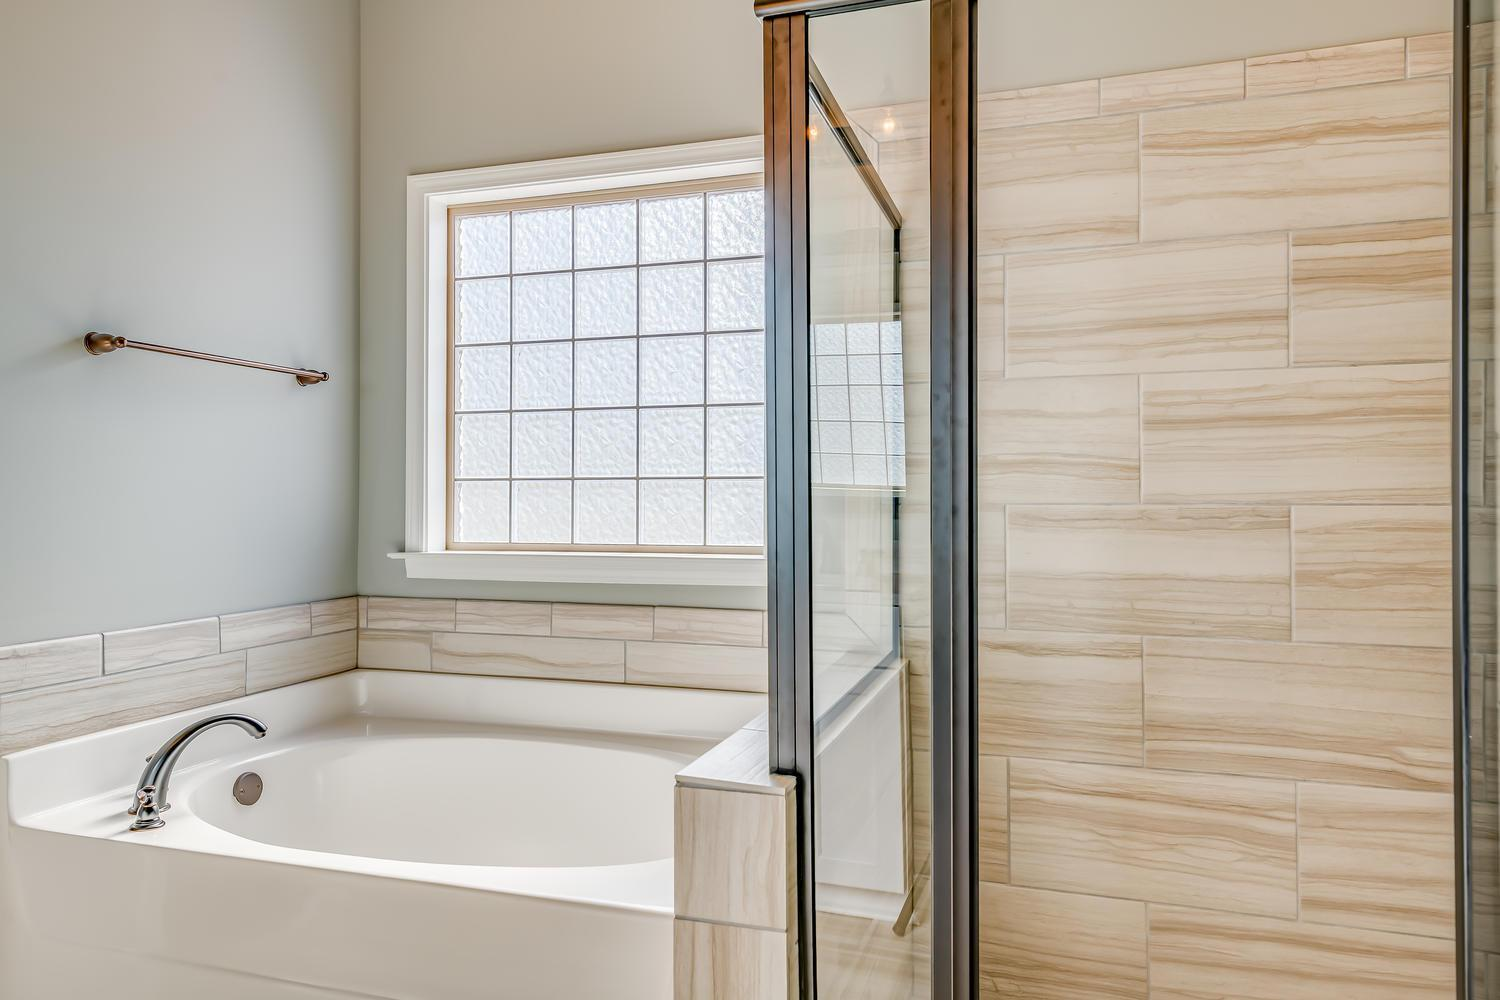 Bathroom featured in the Cottonwood  By Lowder New Homes in Montgomery, AL